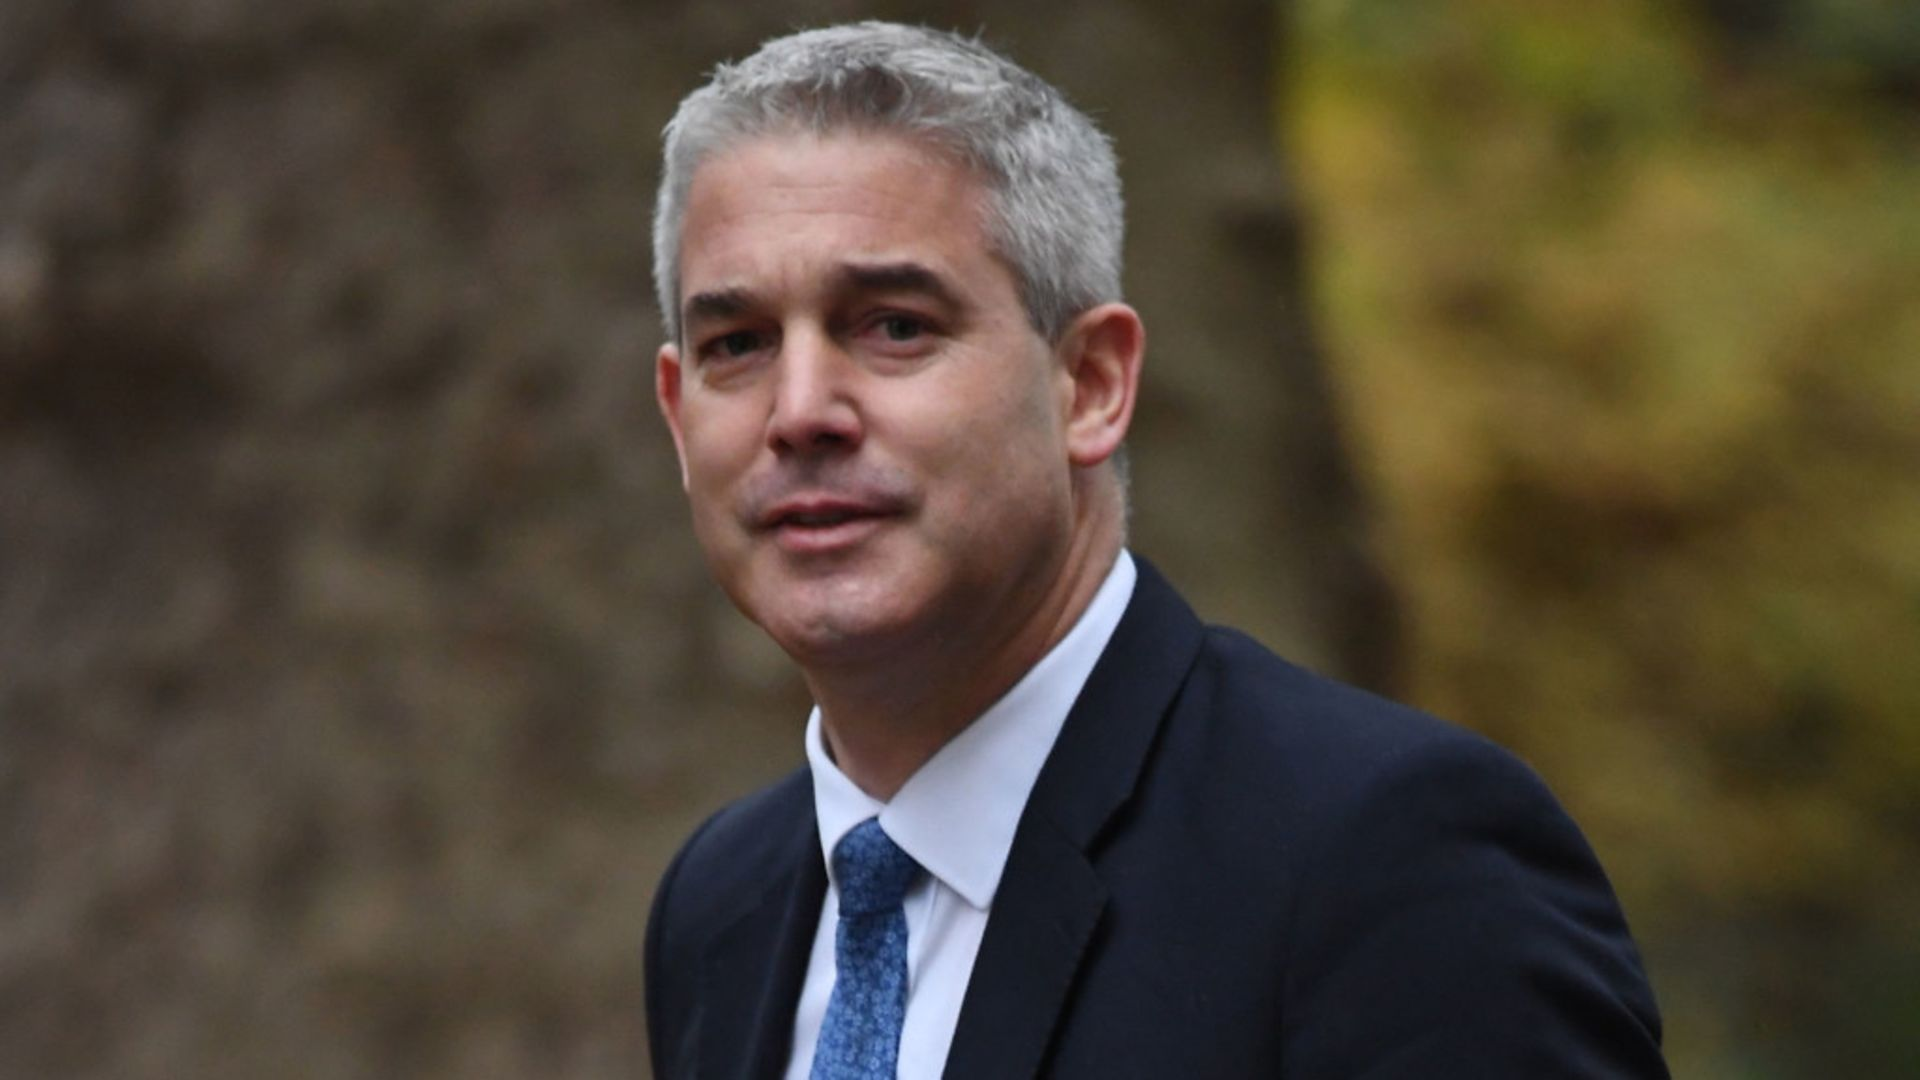 Stephen Barclay said Eat Out to Help Out had helped reinstate consumer confidence - Credit: Stefan Rousseau/PA Wire